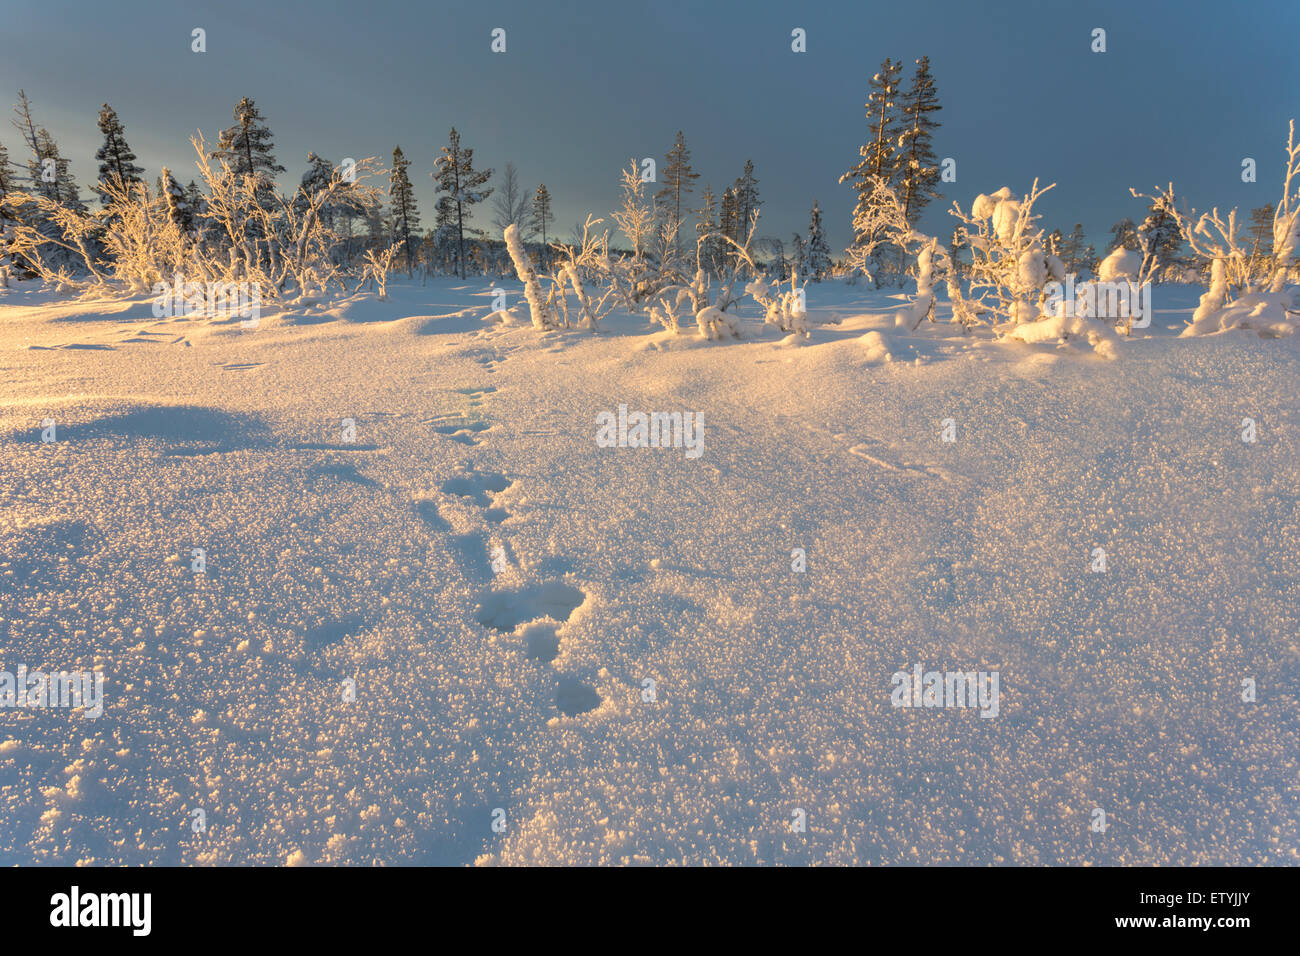 Winter landscape with rabbit tracks in the snow in Gällivare, Swedish lapland, Sweden, Scandinavia - Stock Image